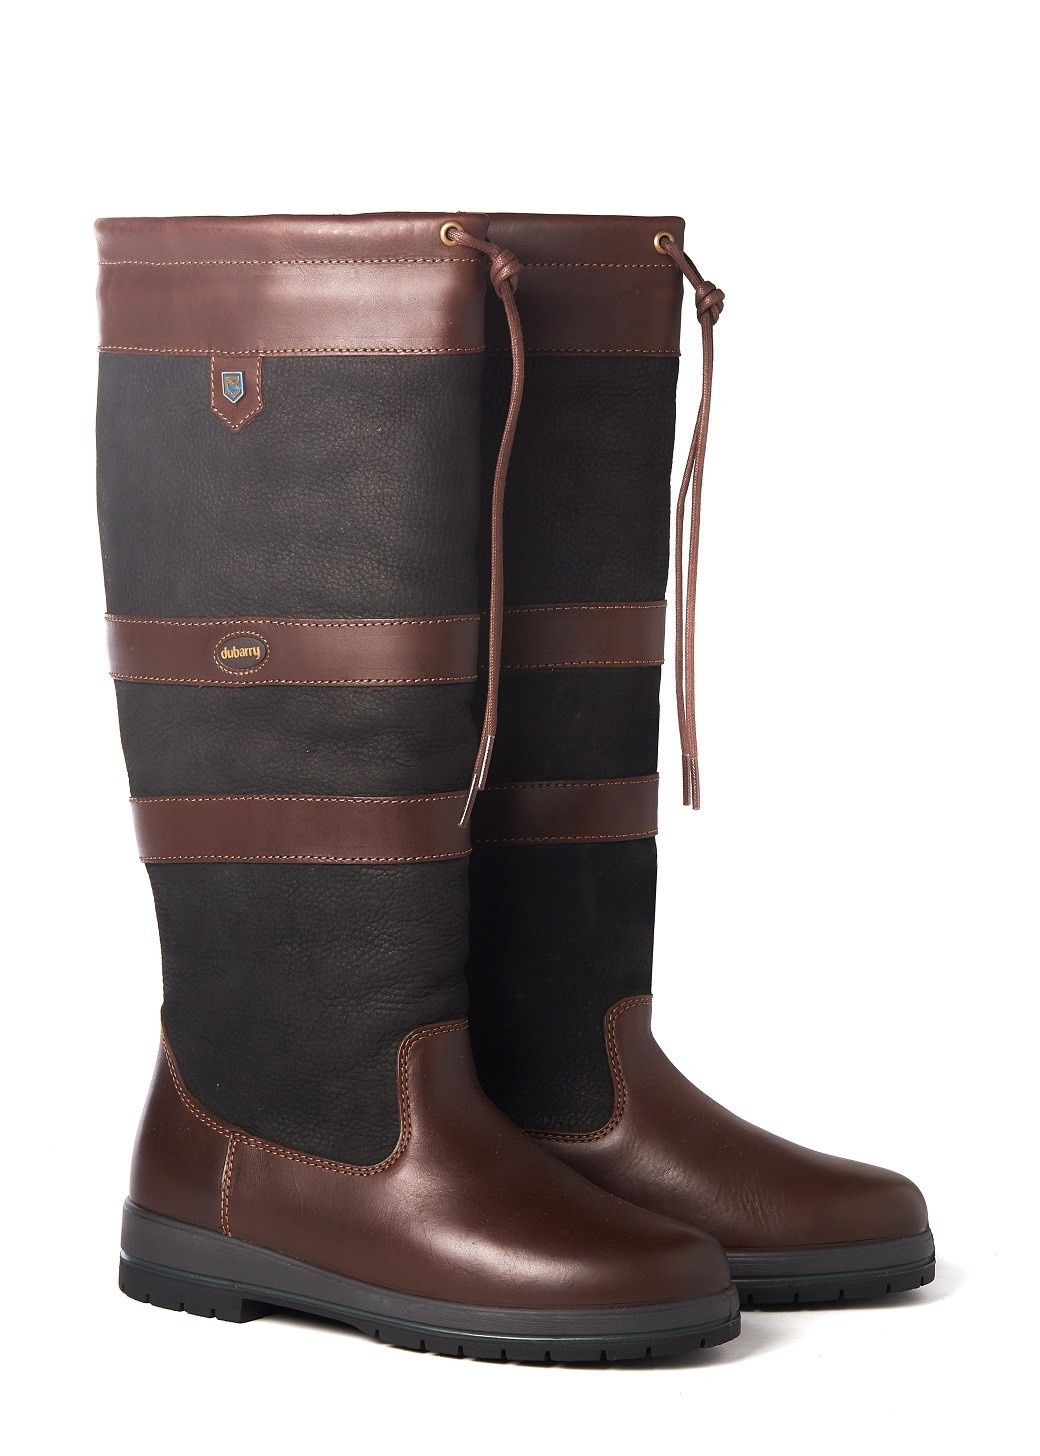 Dubarry Galway Extrafit™- Black/Brown-1